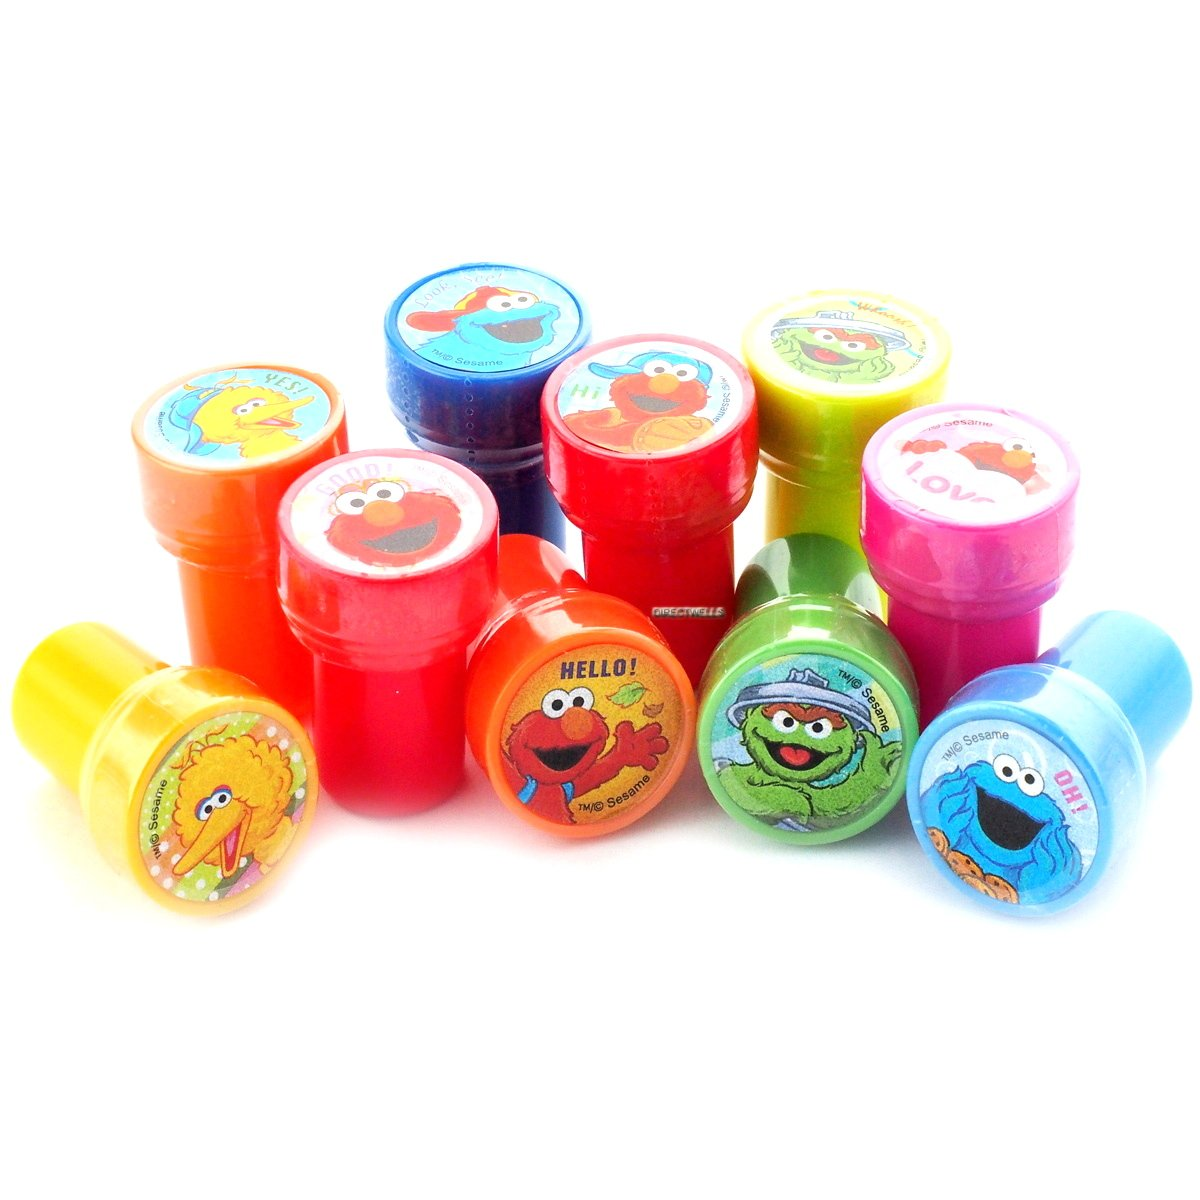 Elmo and Friends Stampers Party Favors (10 Stampers) by Elmo Sesame Street